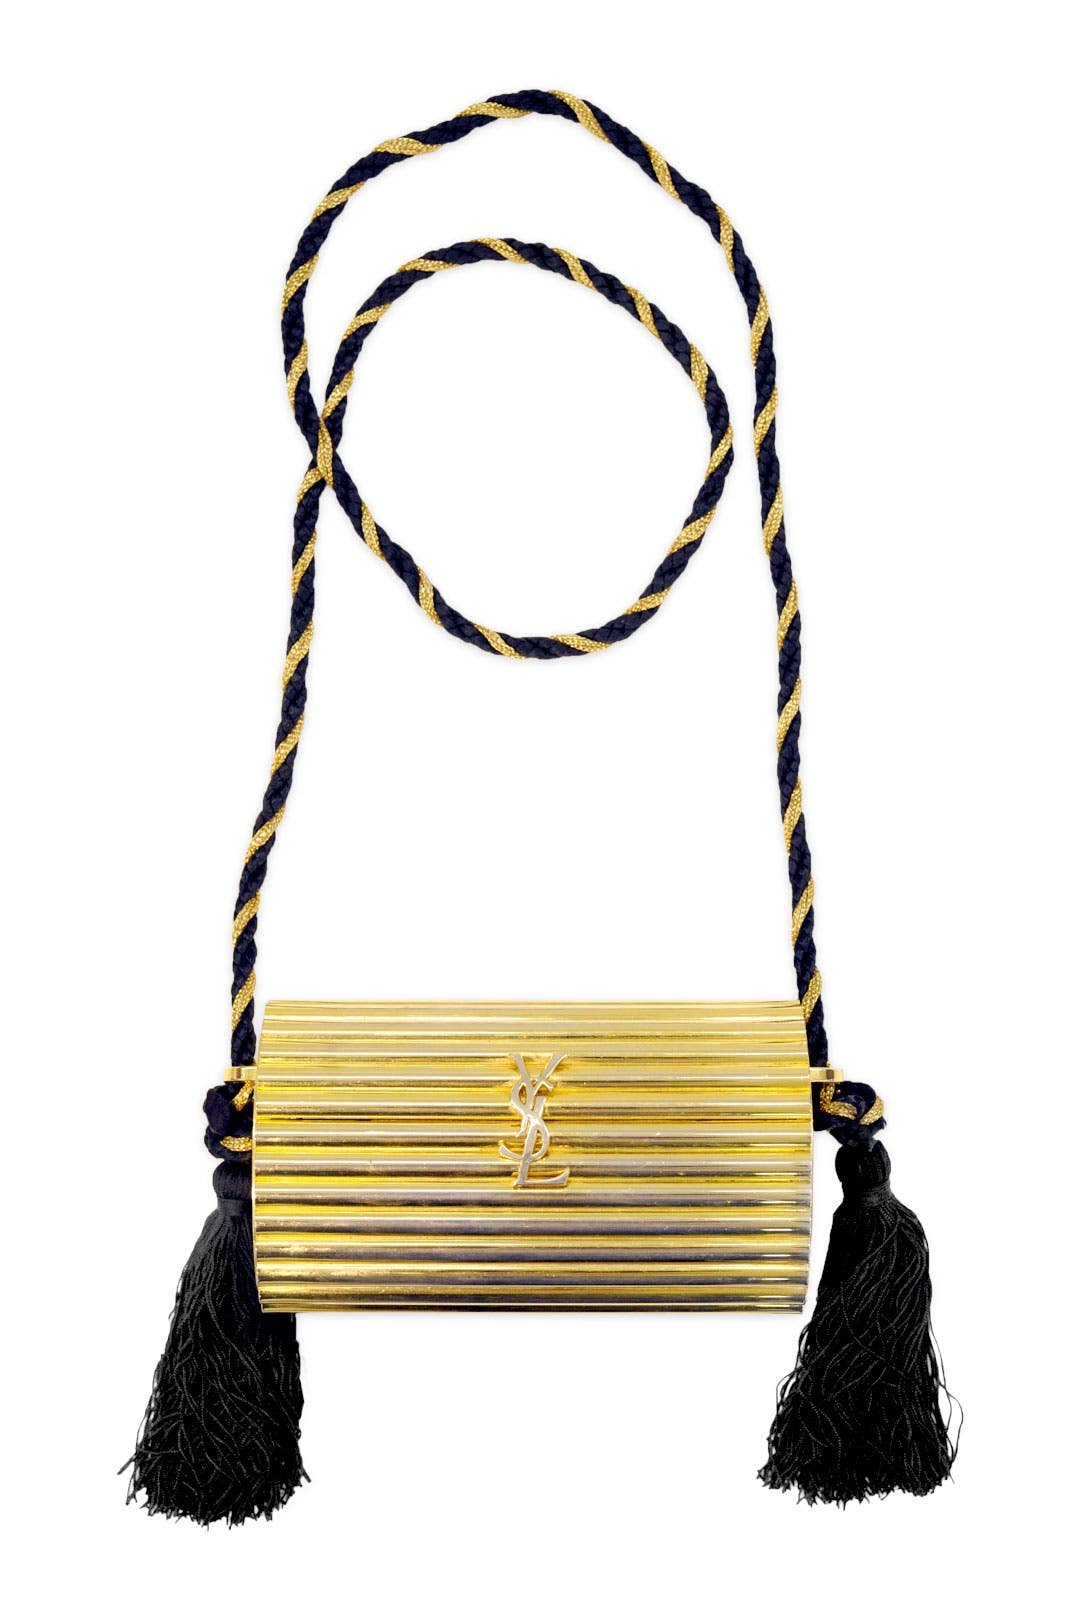 Vintage YSL Gold Tassel Clutch by Decades Vintage